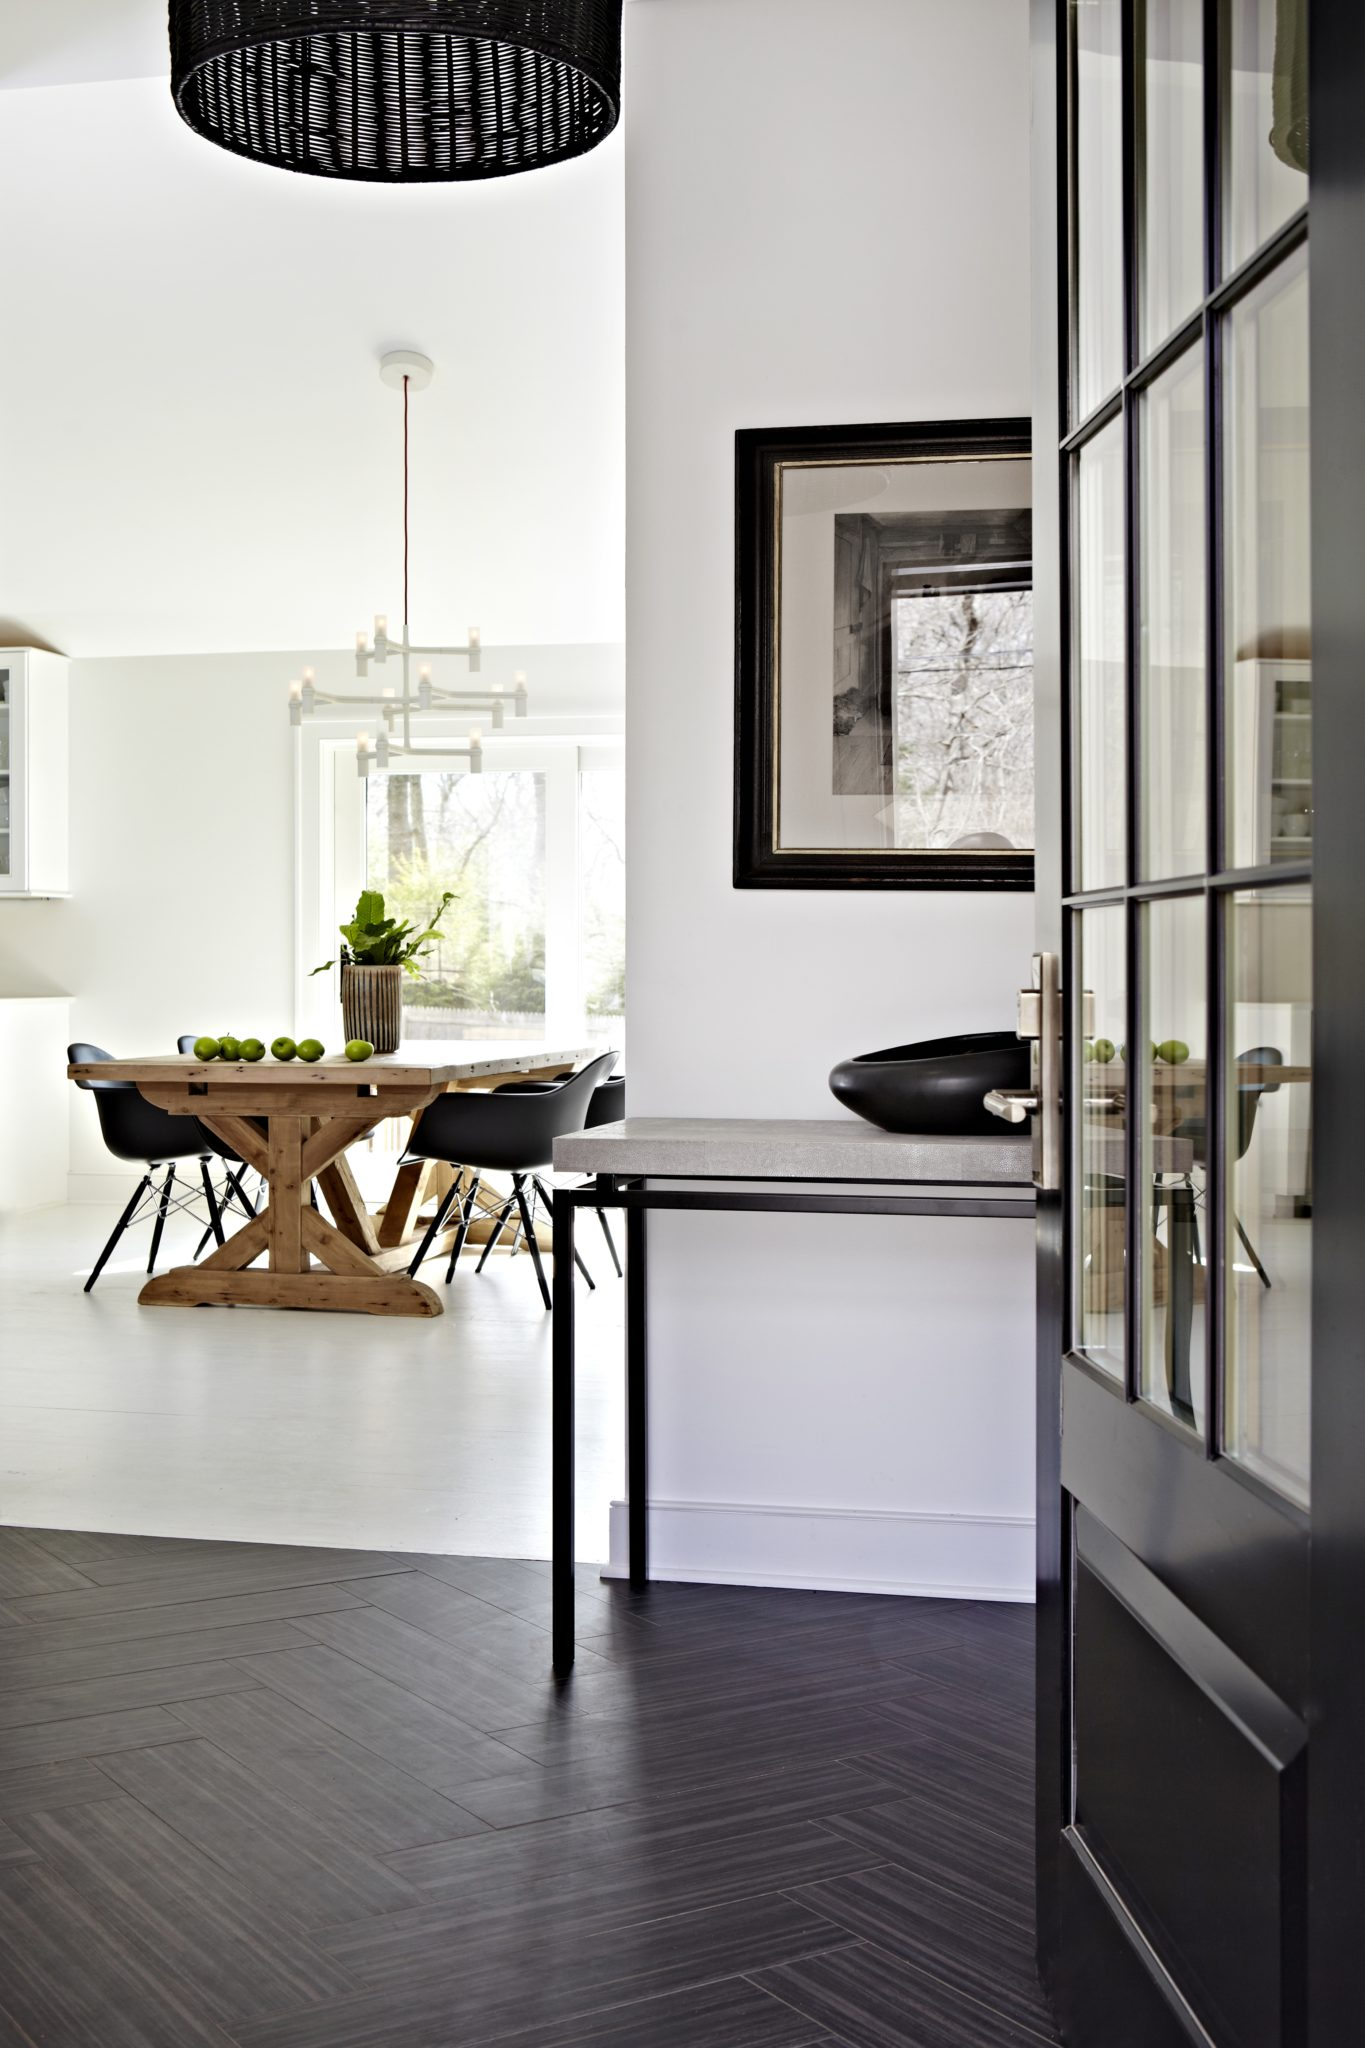 Sag Harbor Village Entryway by Winter McDermott Design